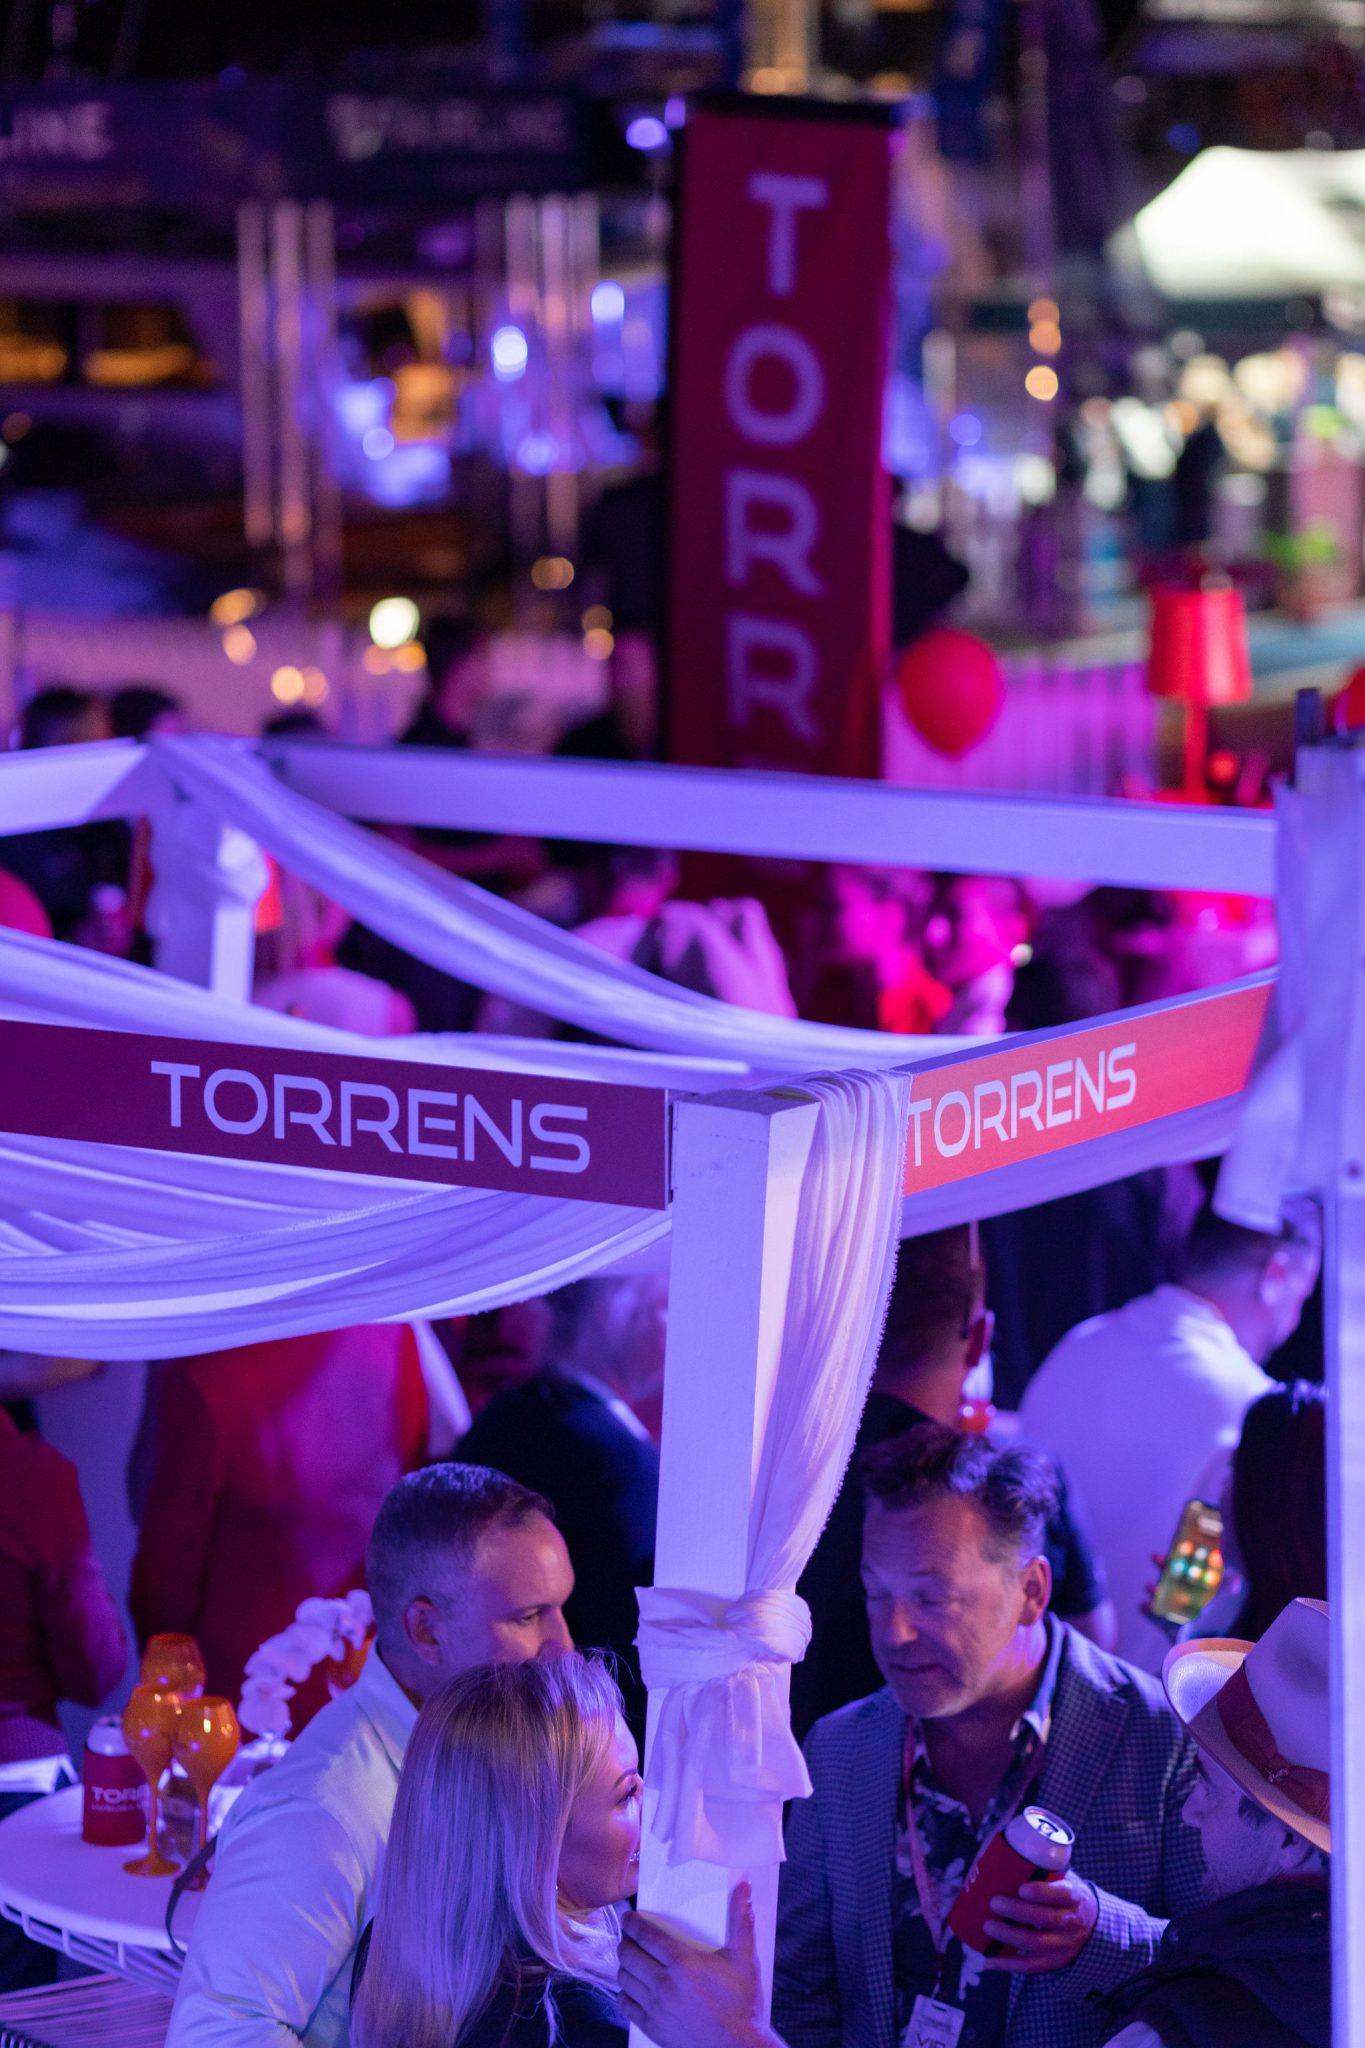 party at the Torrens stand at Sanctuary Cove International Boat Show